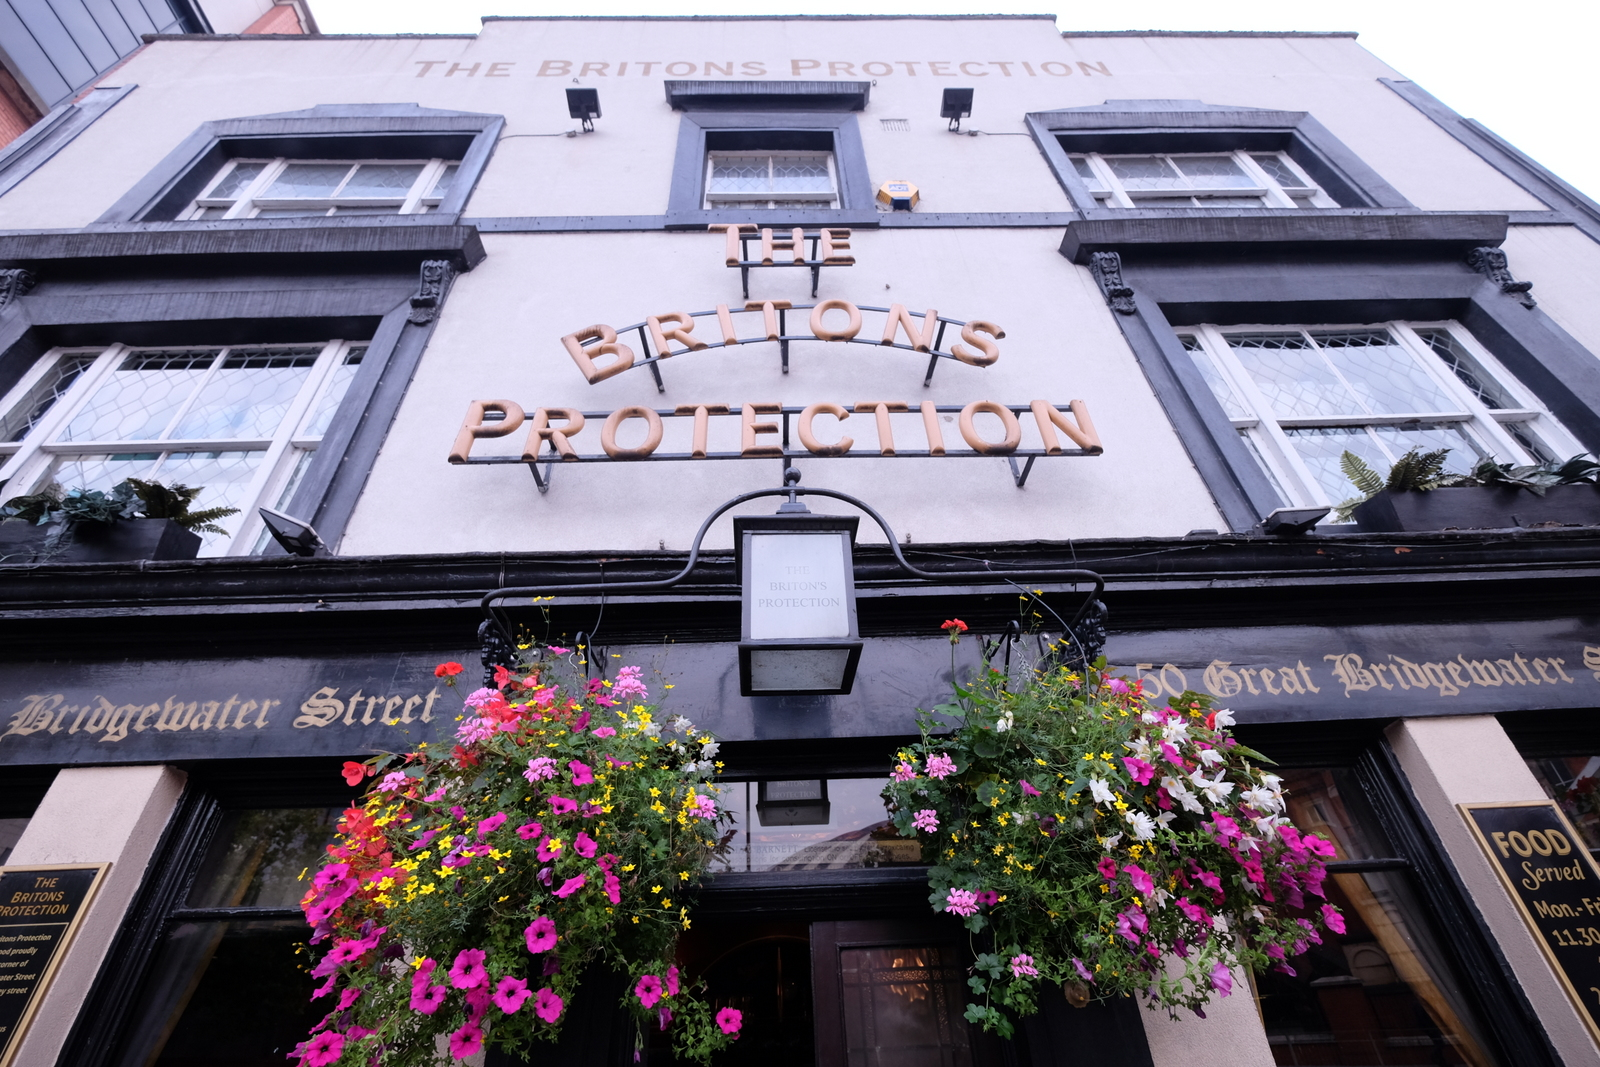 The Briton's Protection is one of many fine pubs in Manchester, England. - JIM BYERS PHOTO